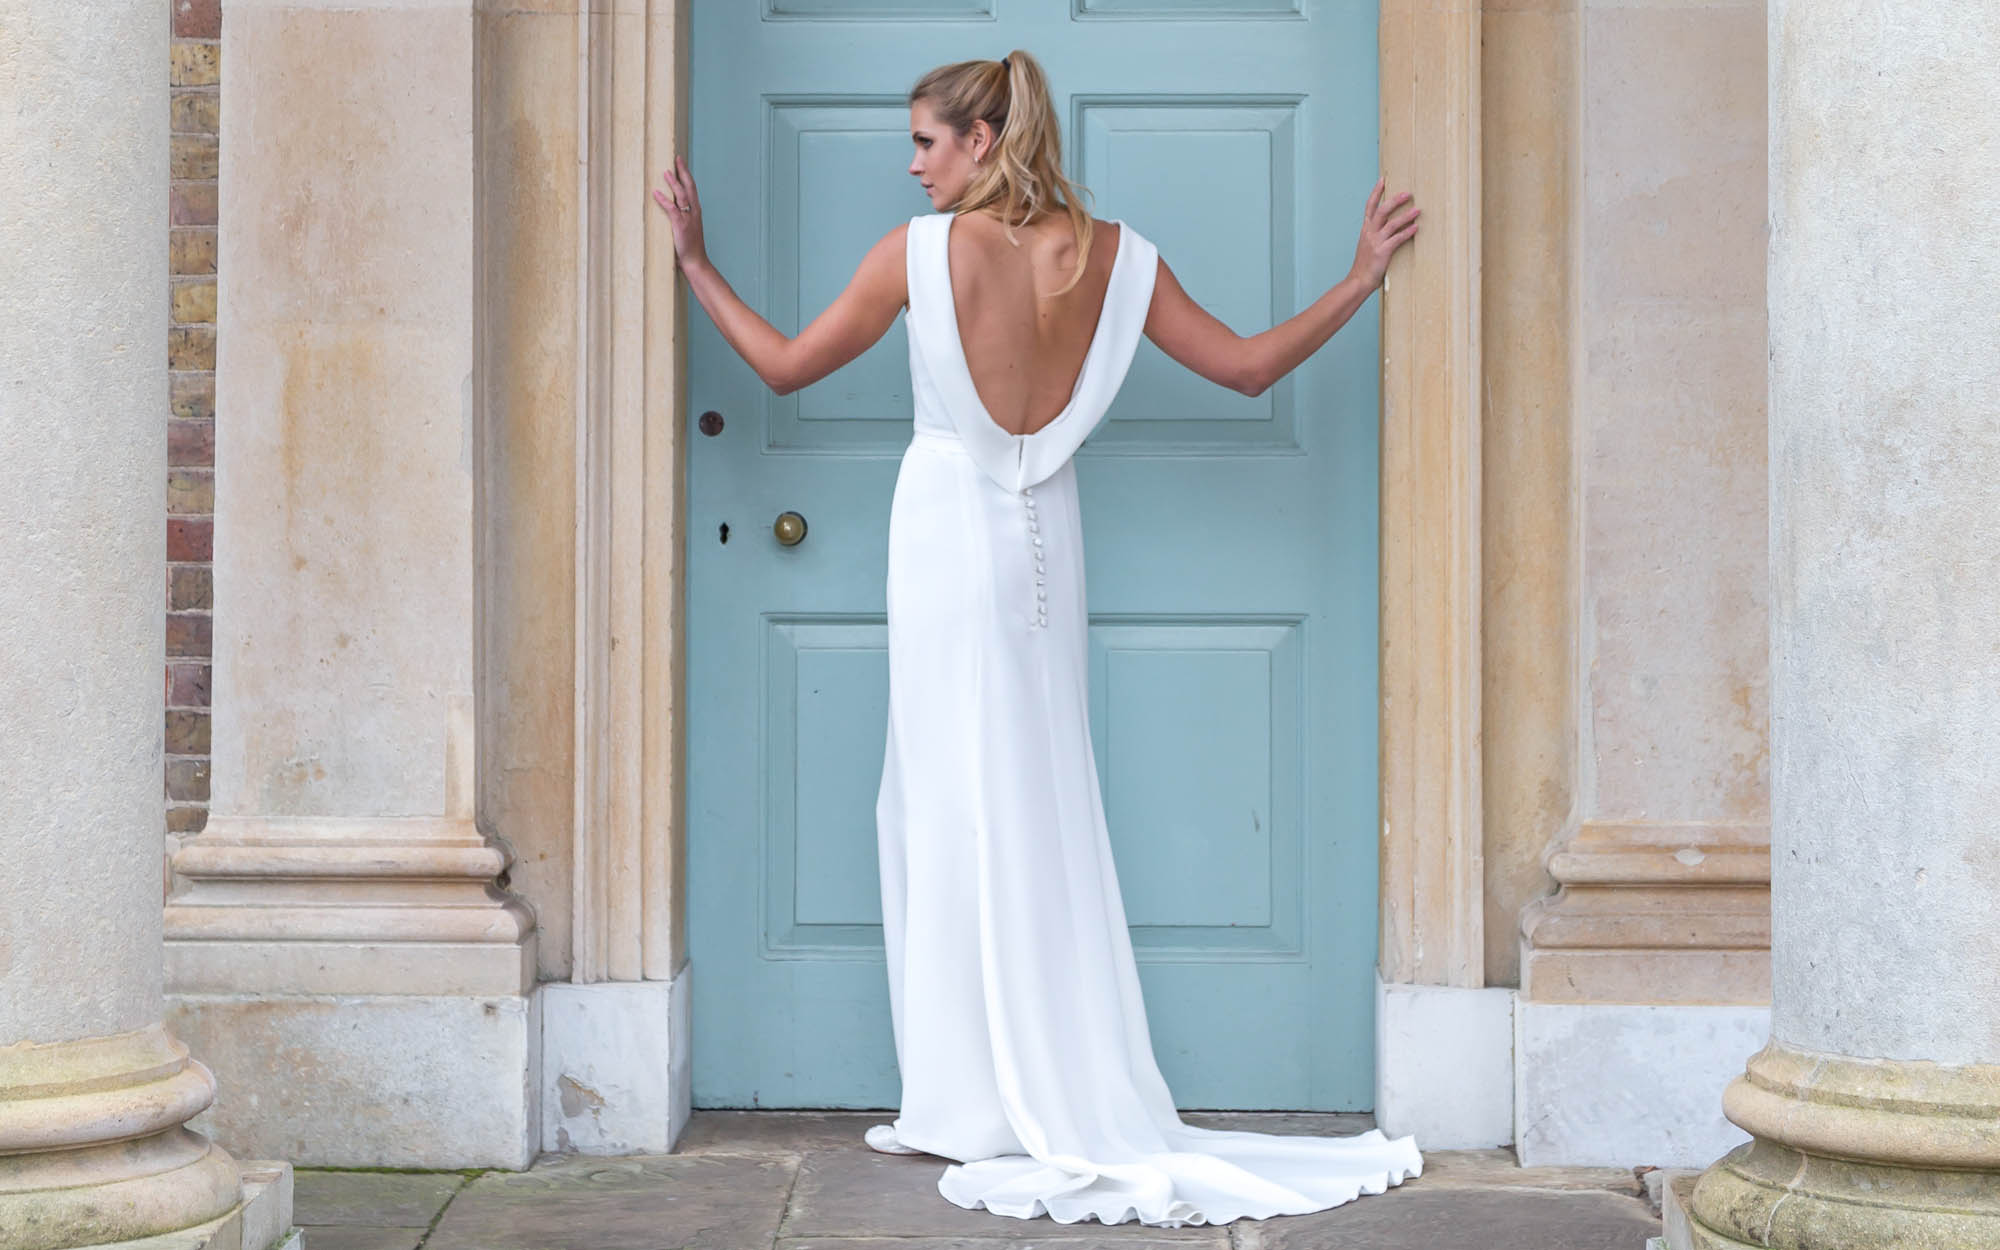 Louise Selby, the award-winning wedding dress designer